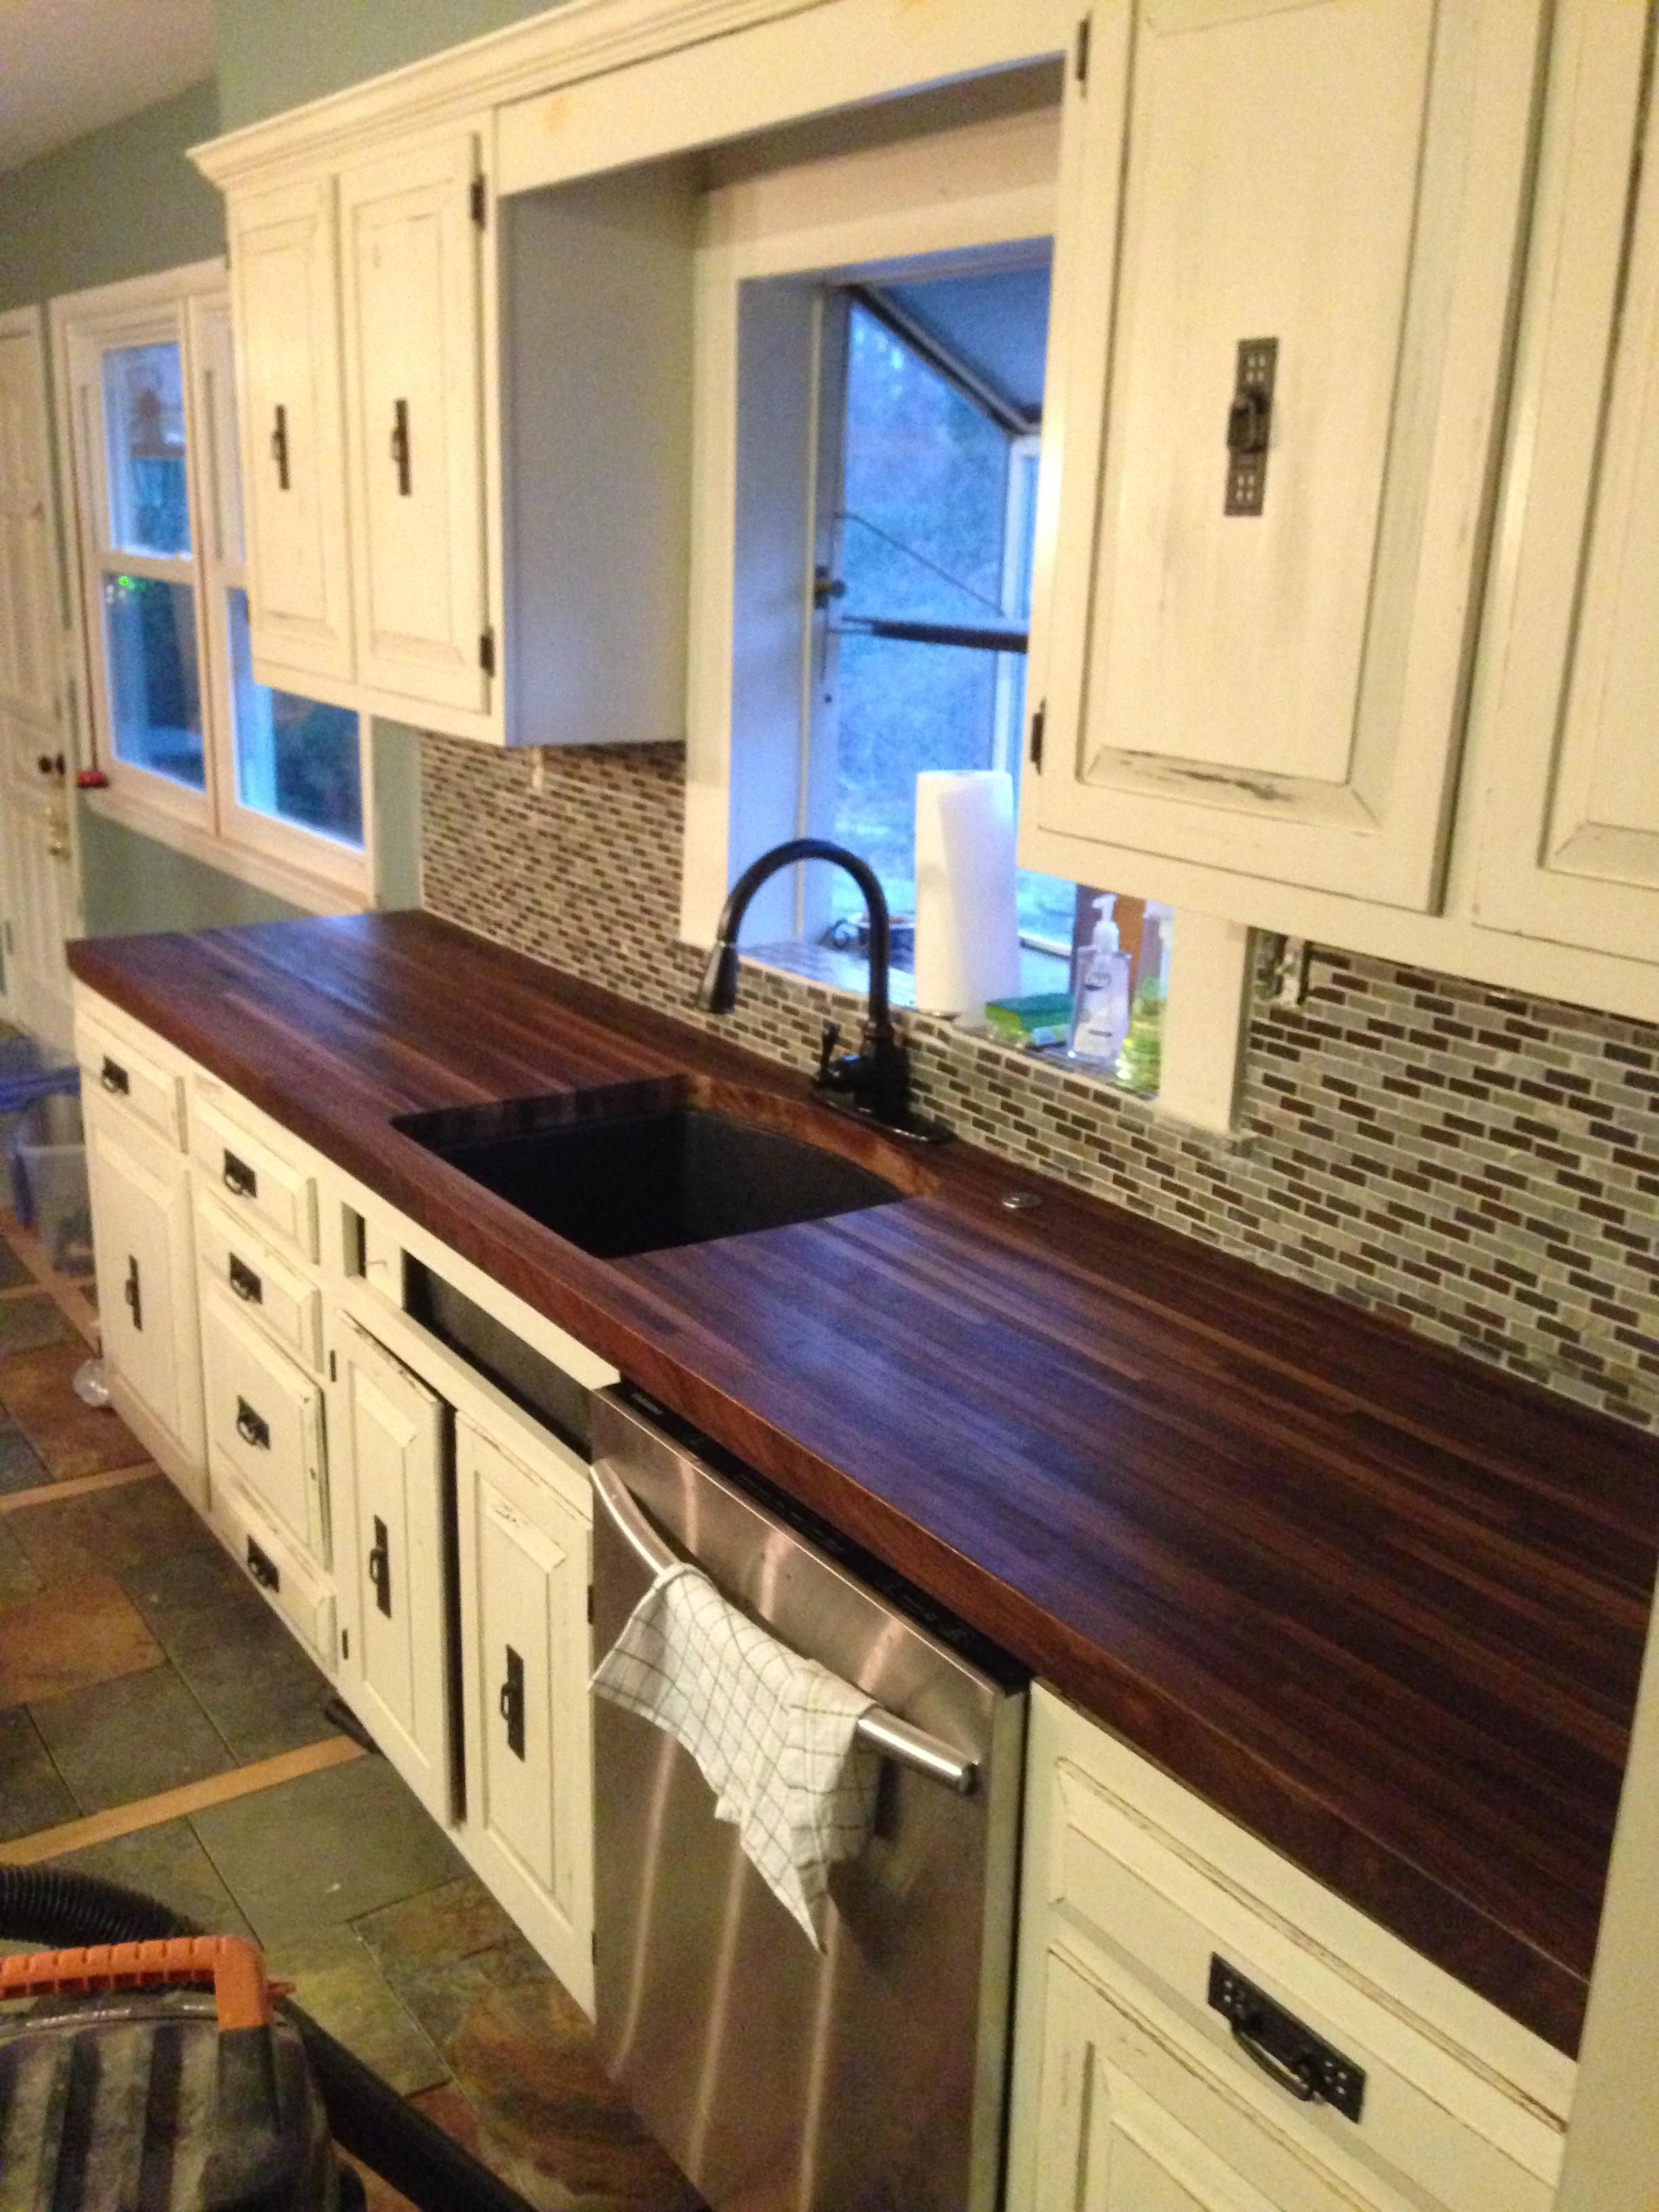 Diy Black Walnut Butcher Block Countertops To Replace That Awful Laminate